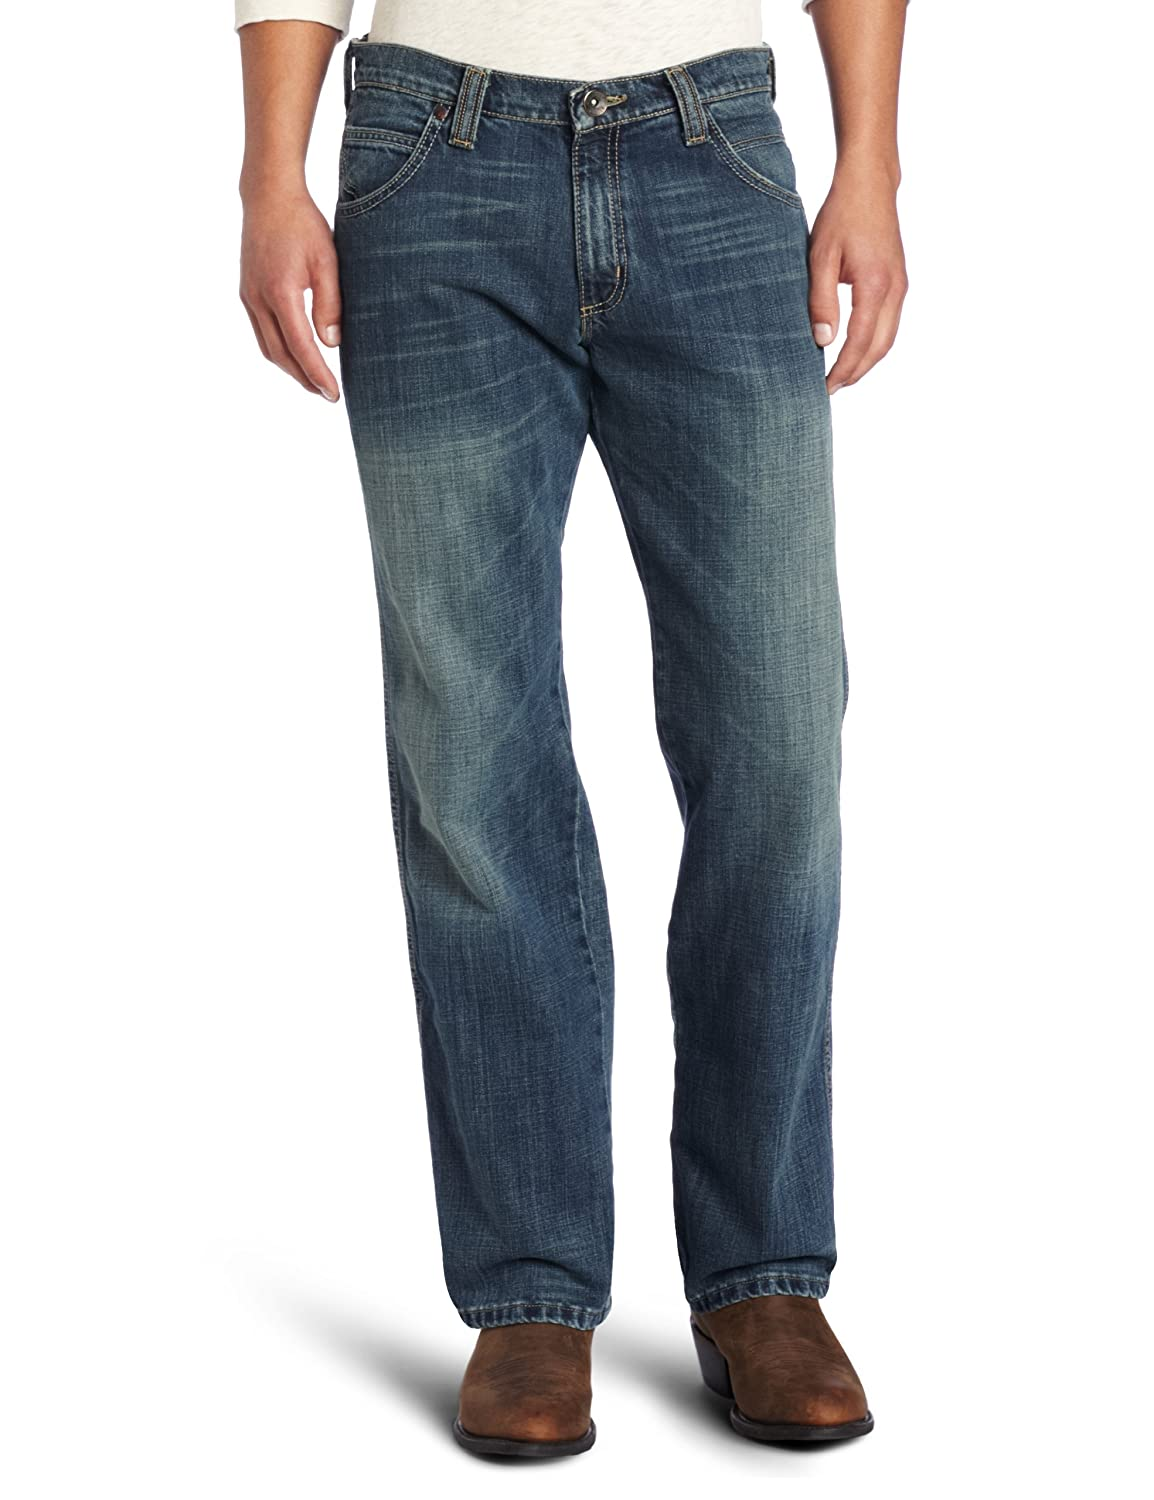 9dd26b0f Wrangler Men's Retro Relaxed Fit Straight-Leg Jean at Amazon Men's Clothing  store: Wrangler Retro Jeans For Men